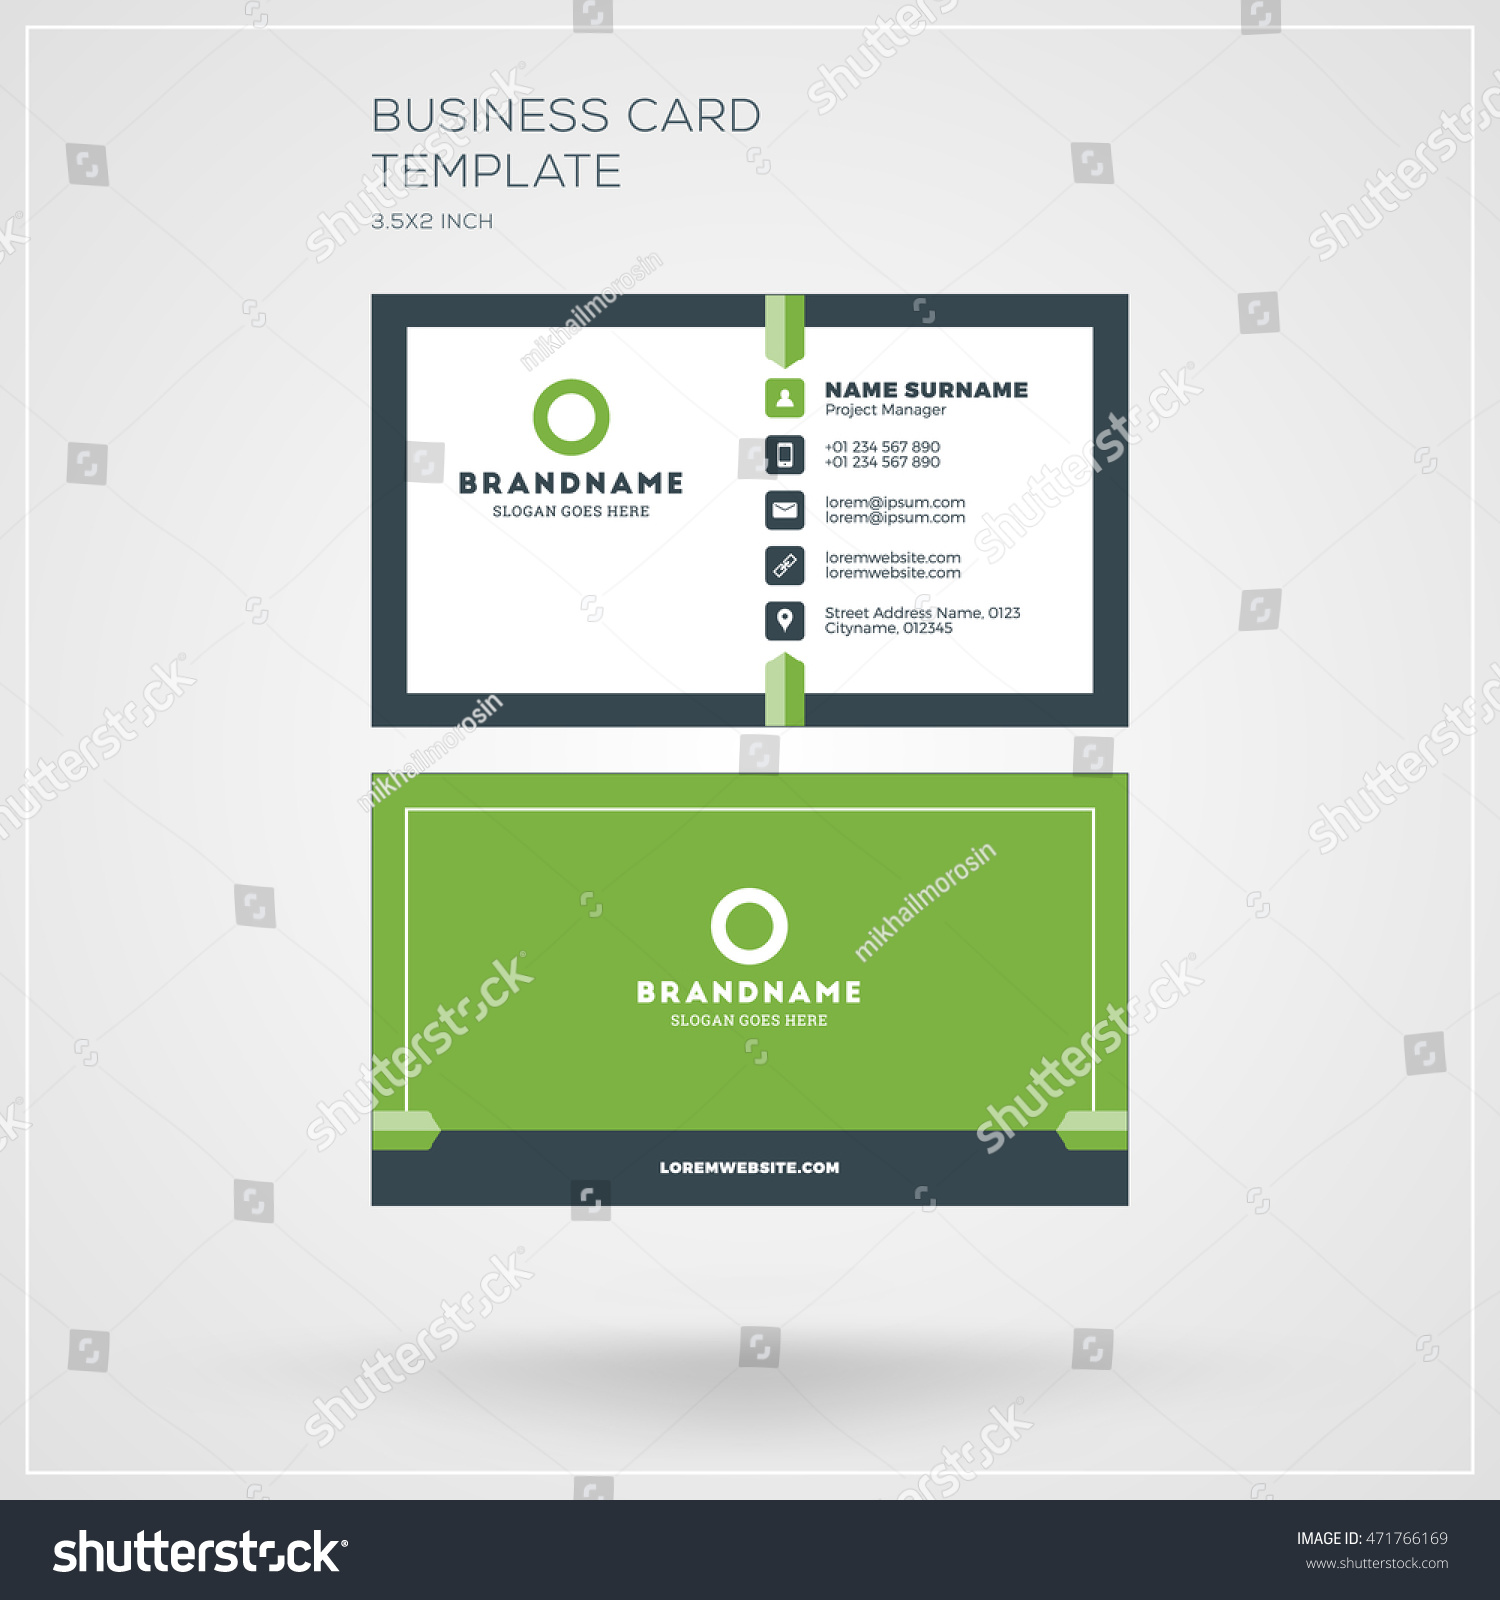 Free Forklift Certification Card Template